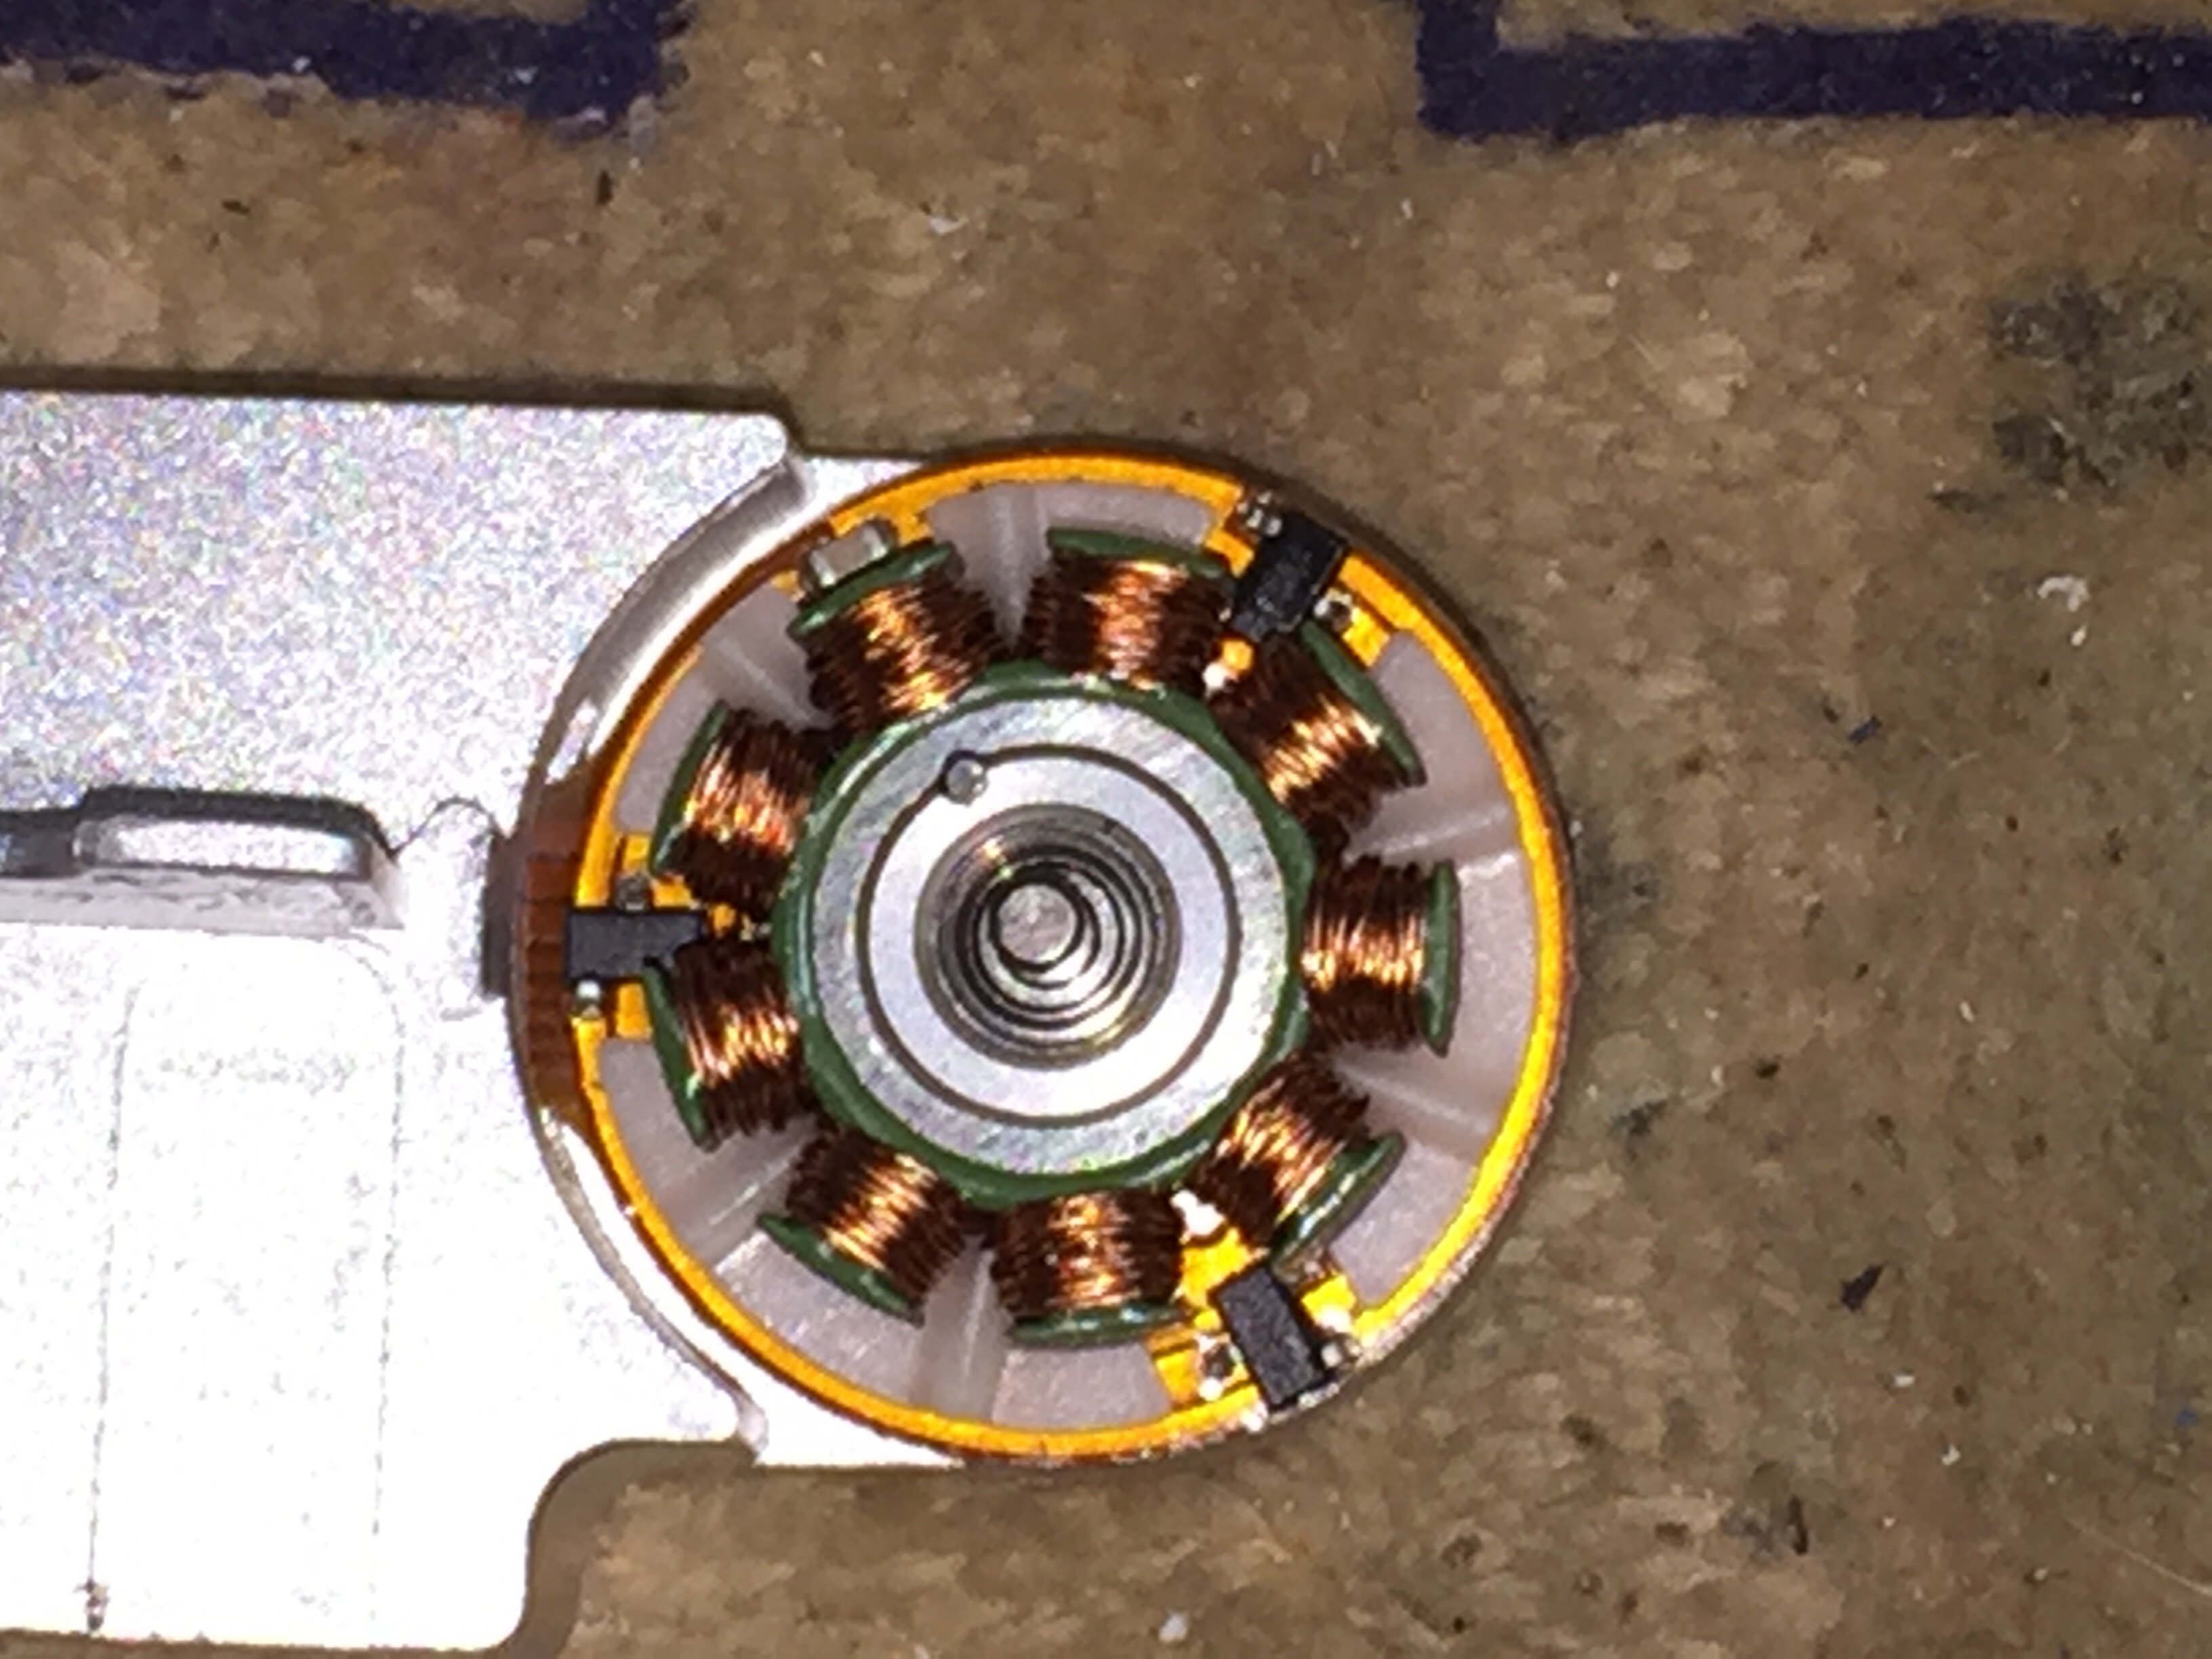 Barracuda With A Failure Of The Printed Circuit Board The Motor